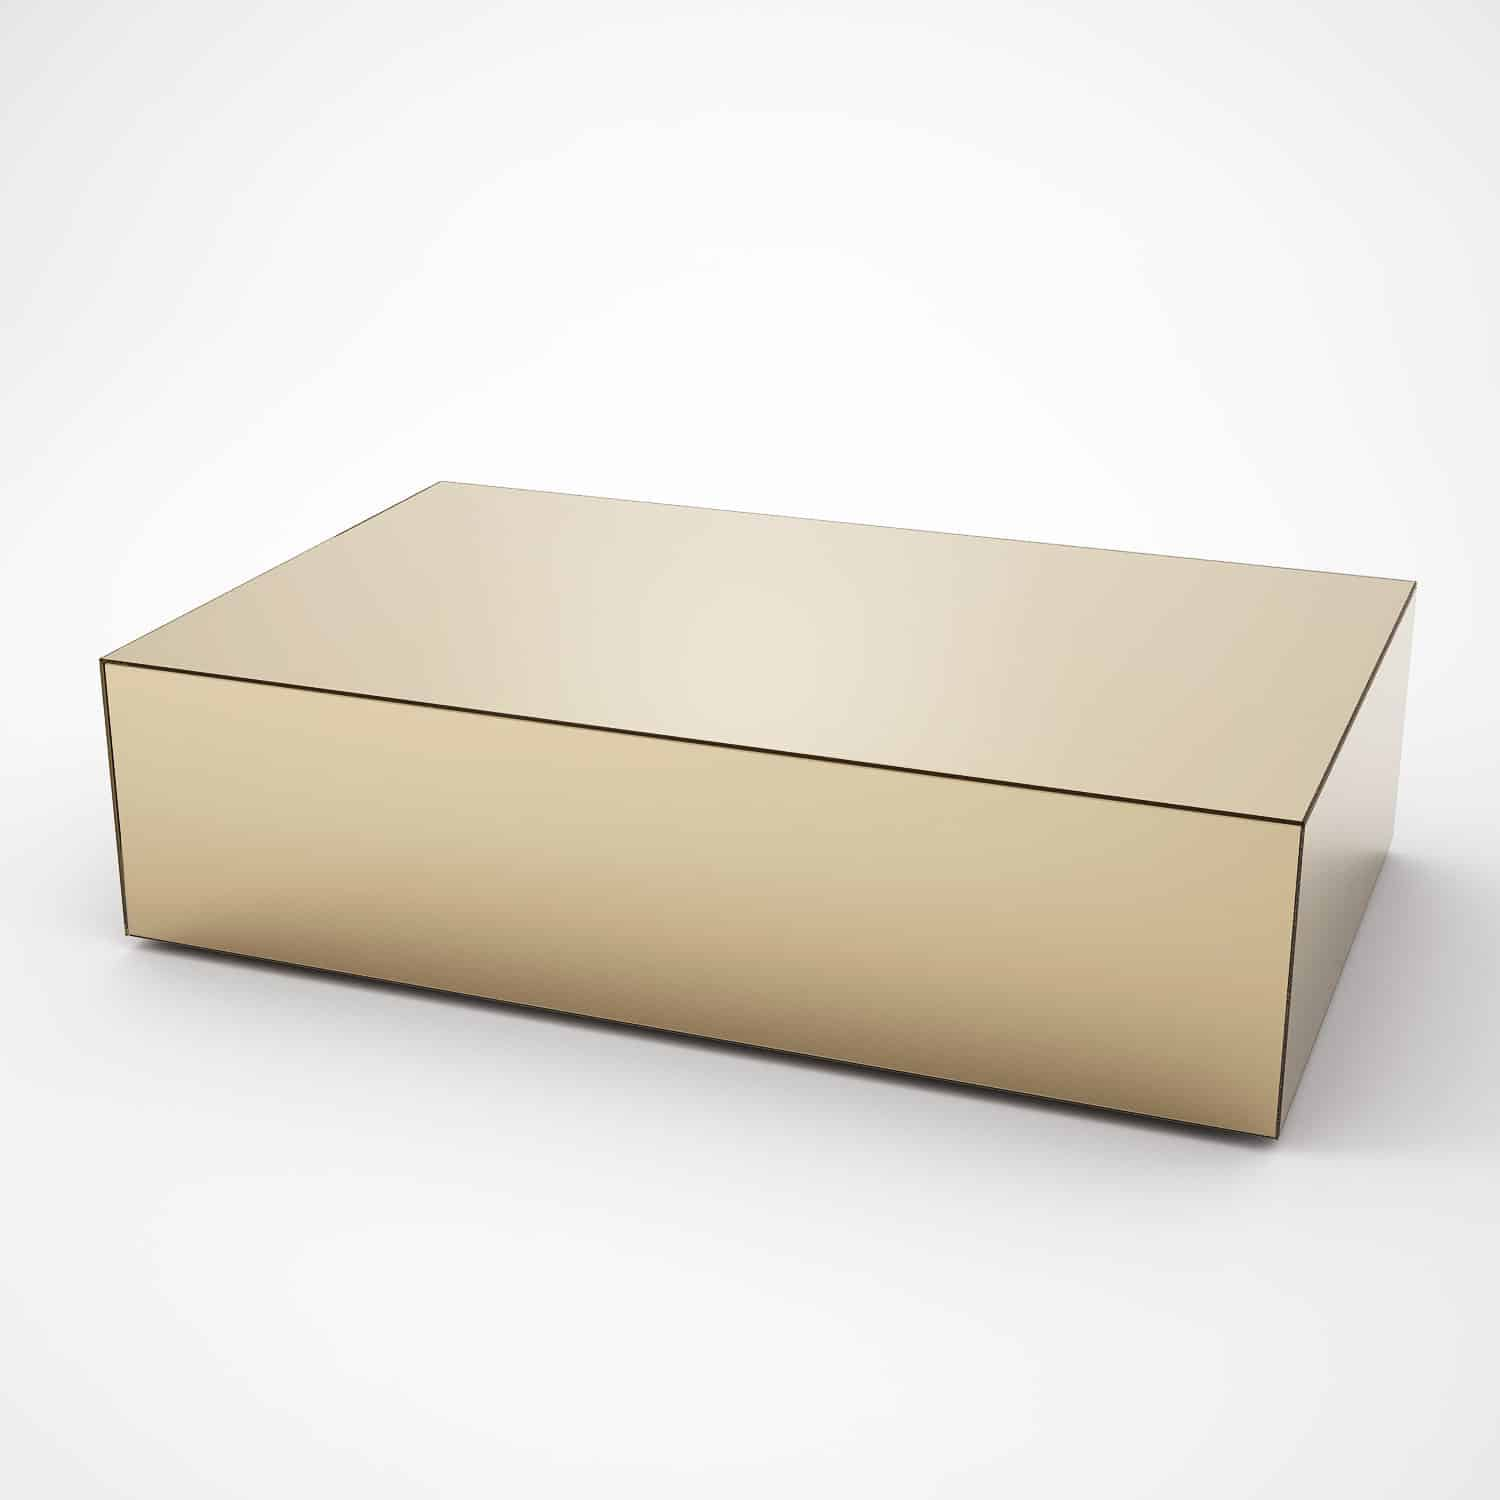 Rectangular bronze mirrored coffee table by mirrorbox for Glass furniture